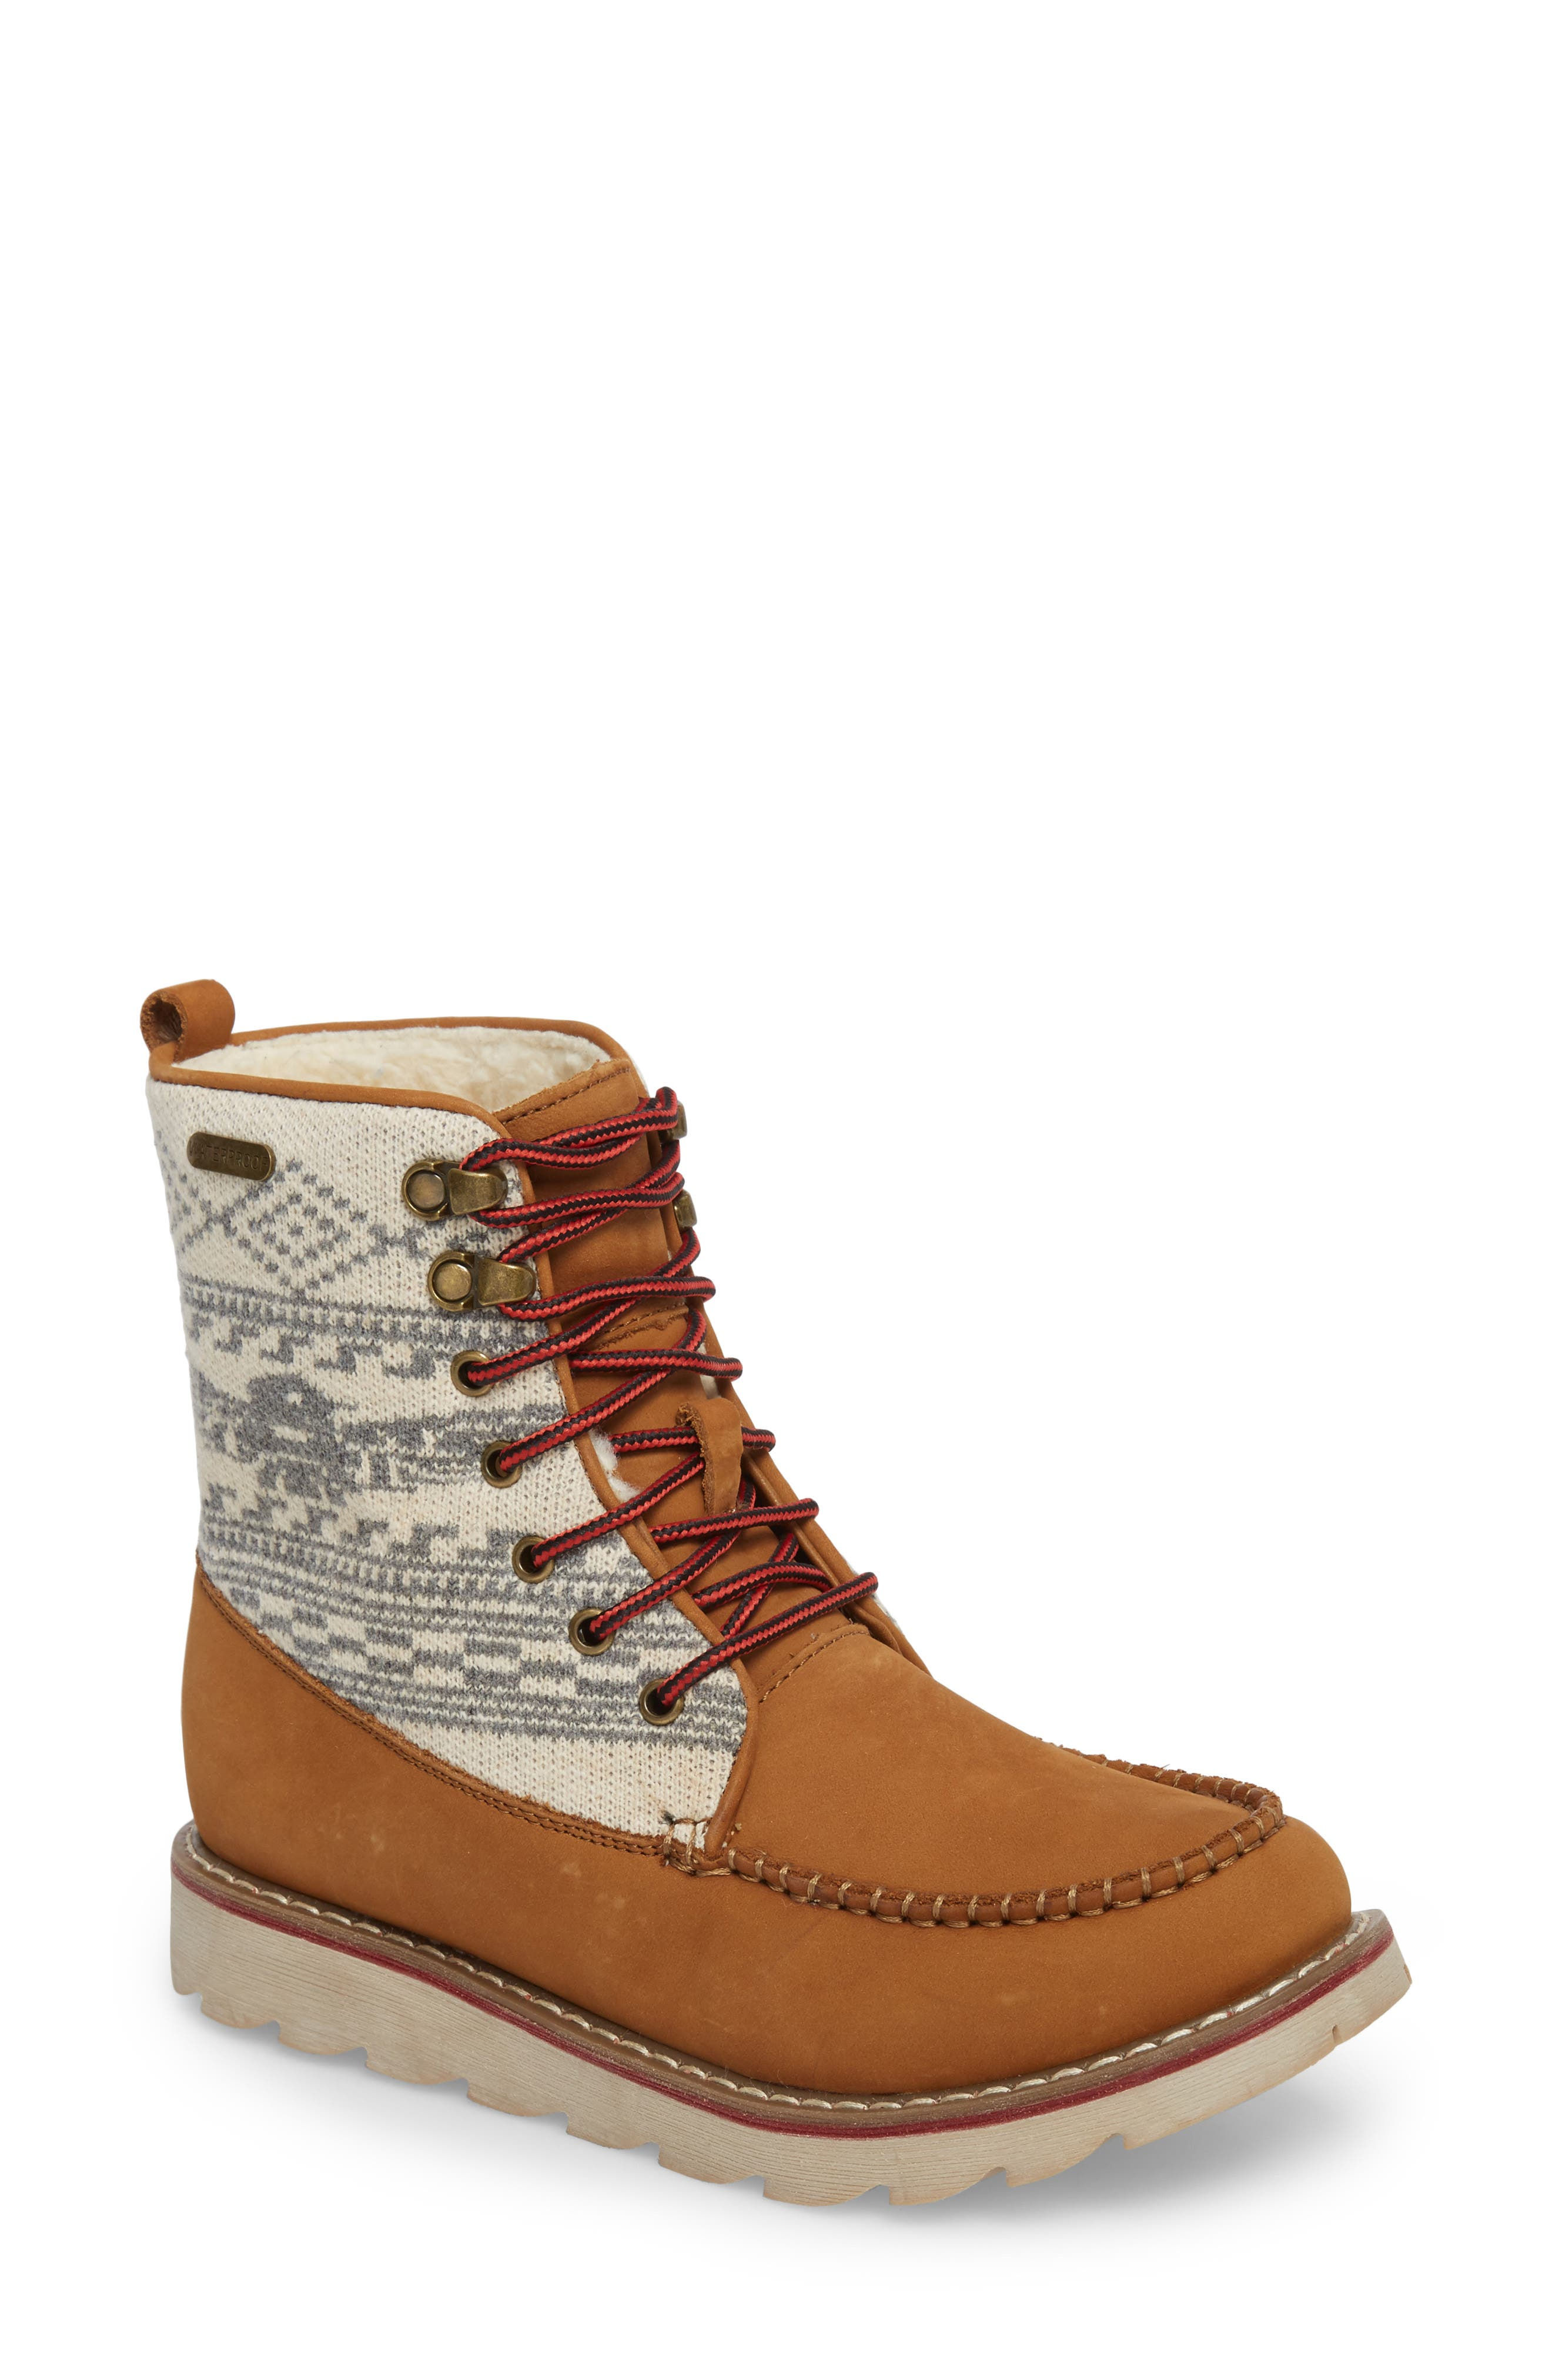 Patterned Waterproof Snow Boot,                         Main,                         color, Tan Leather